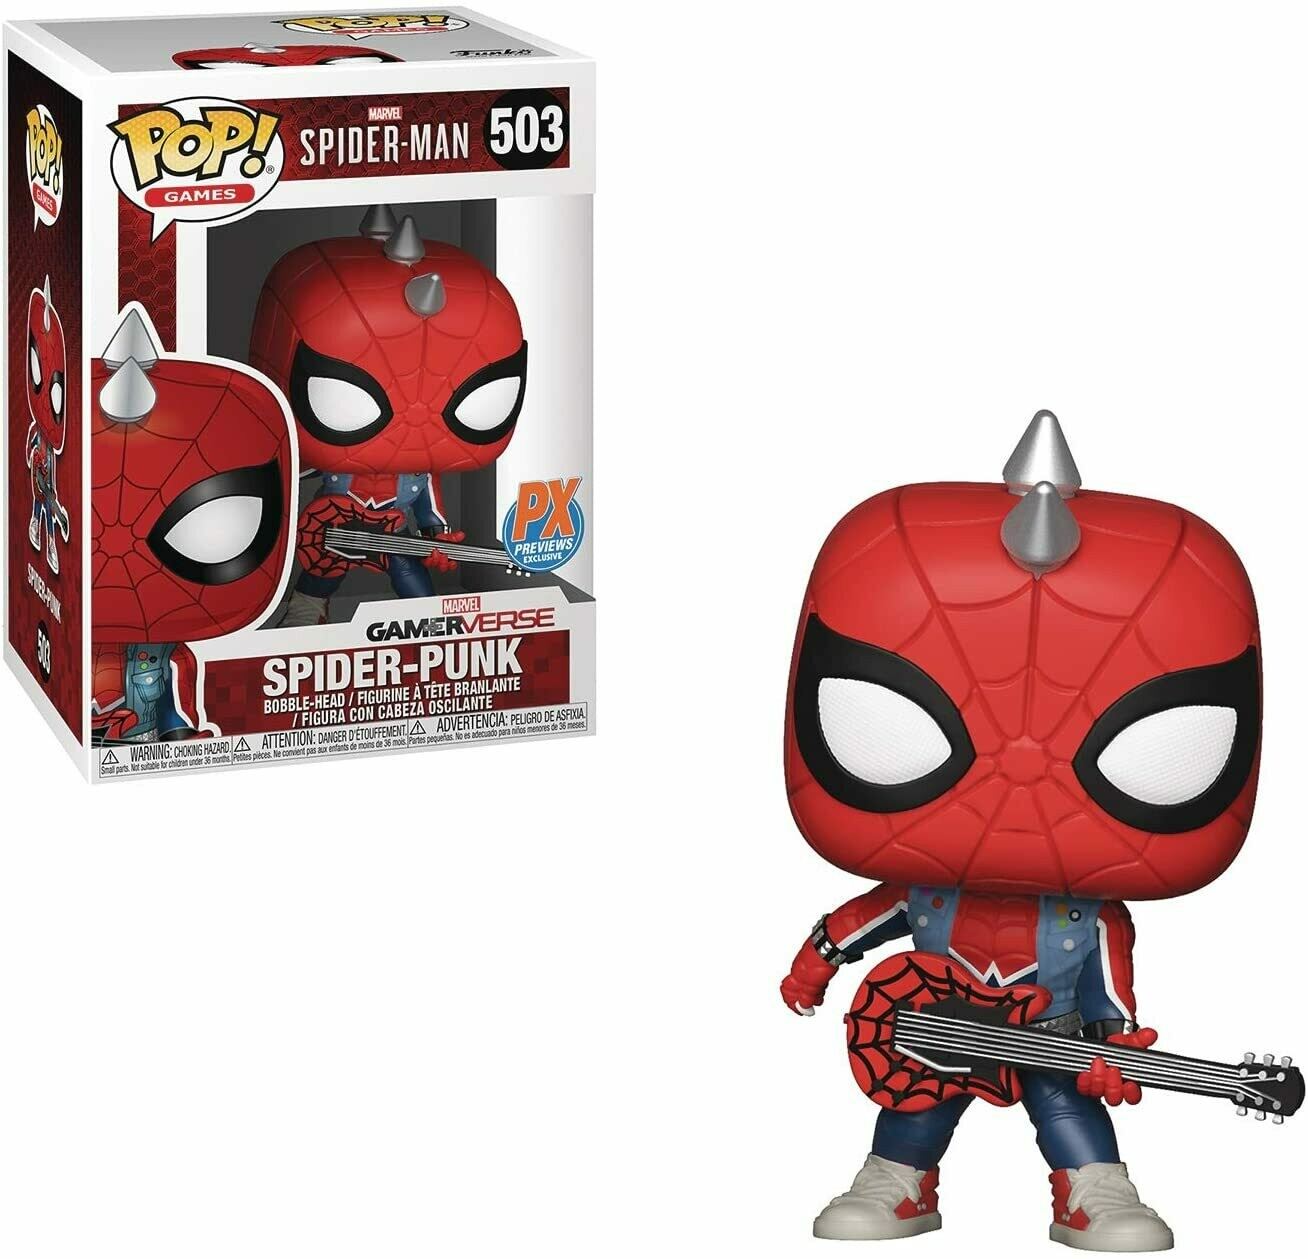 Funko Pop Marvel: Spider-Man Spider-Punk PX Exclusivo